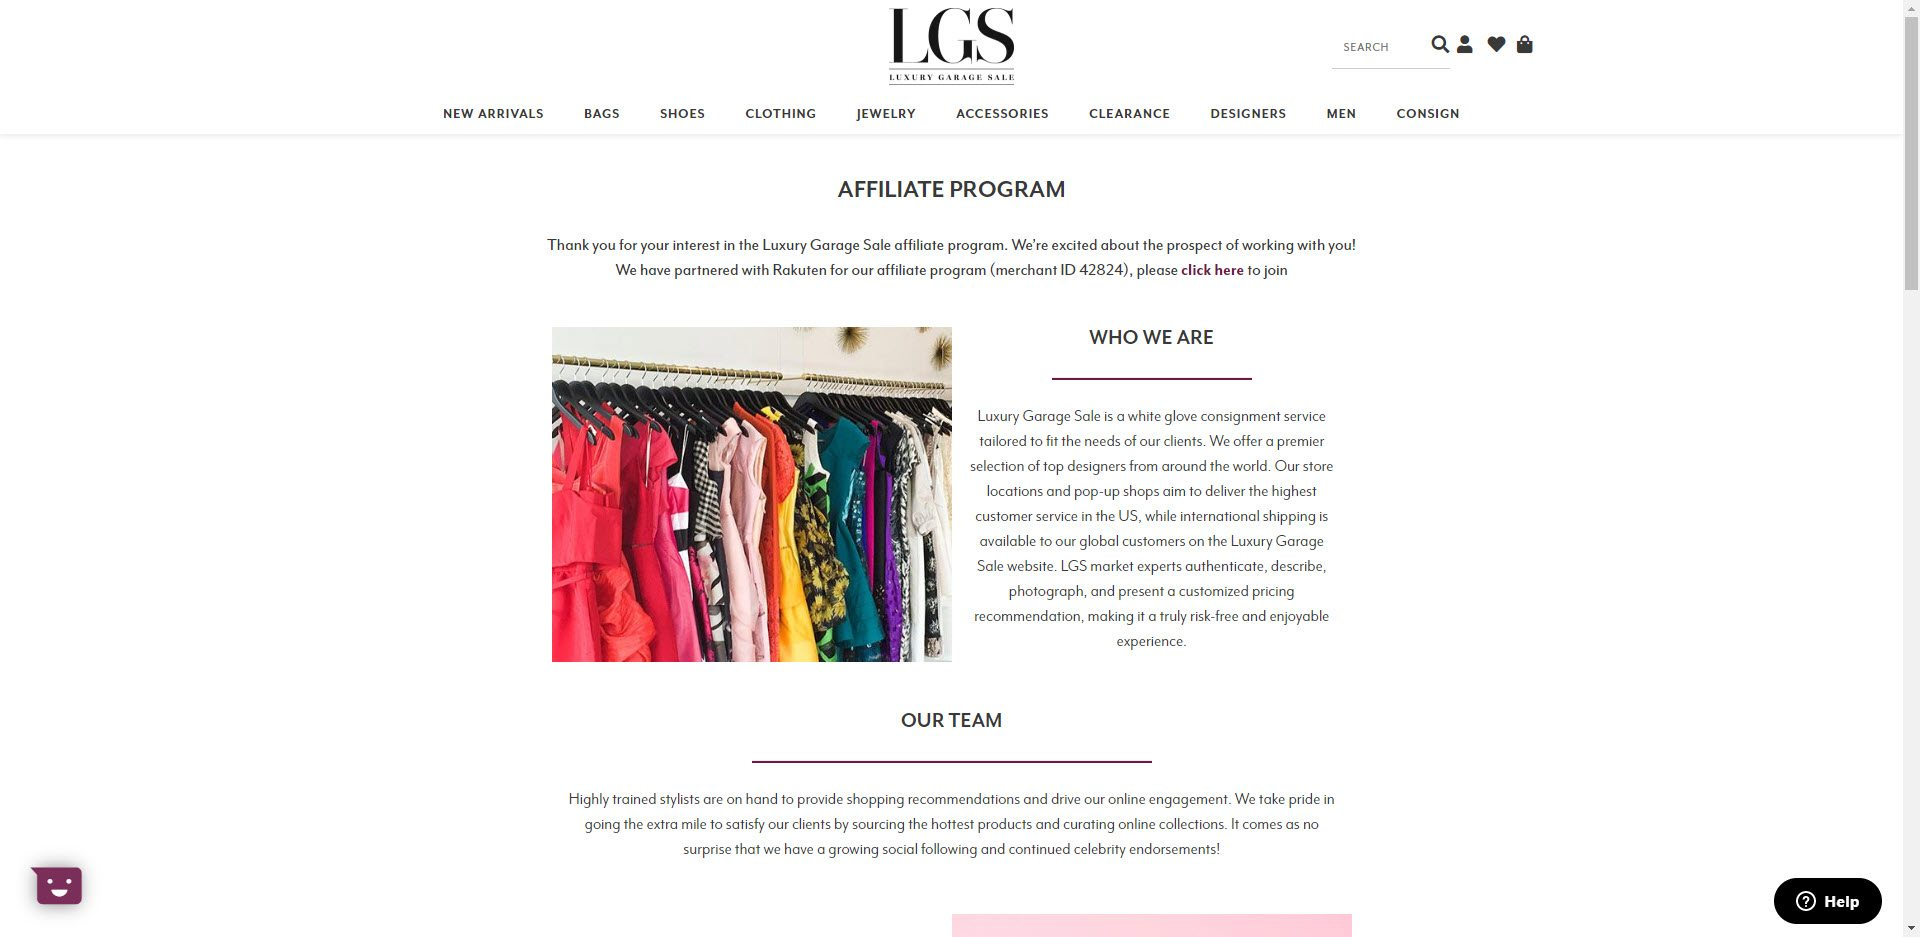 Fashion Designer Affiliate Programs - Luxury Garage Sale affiliate